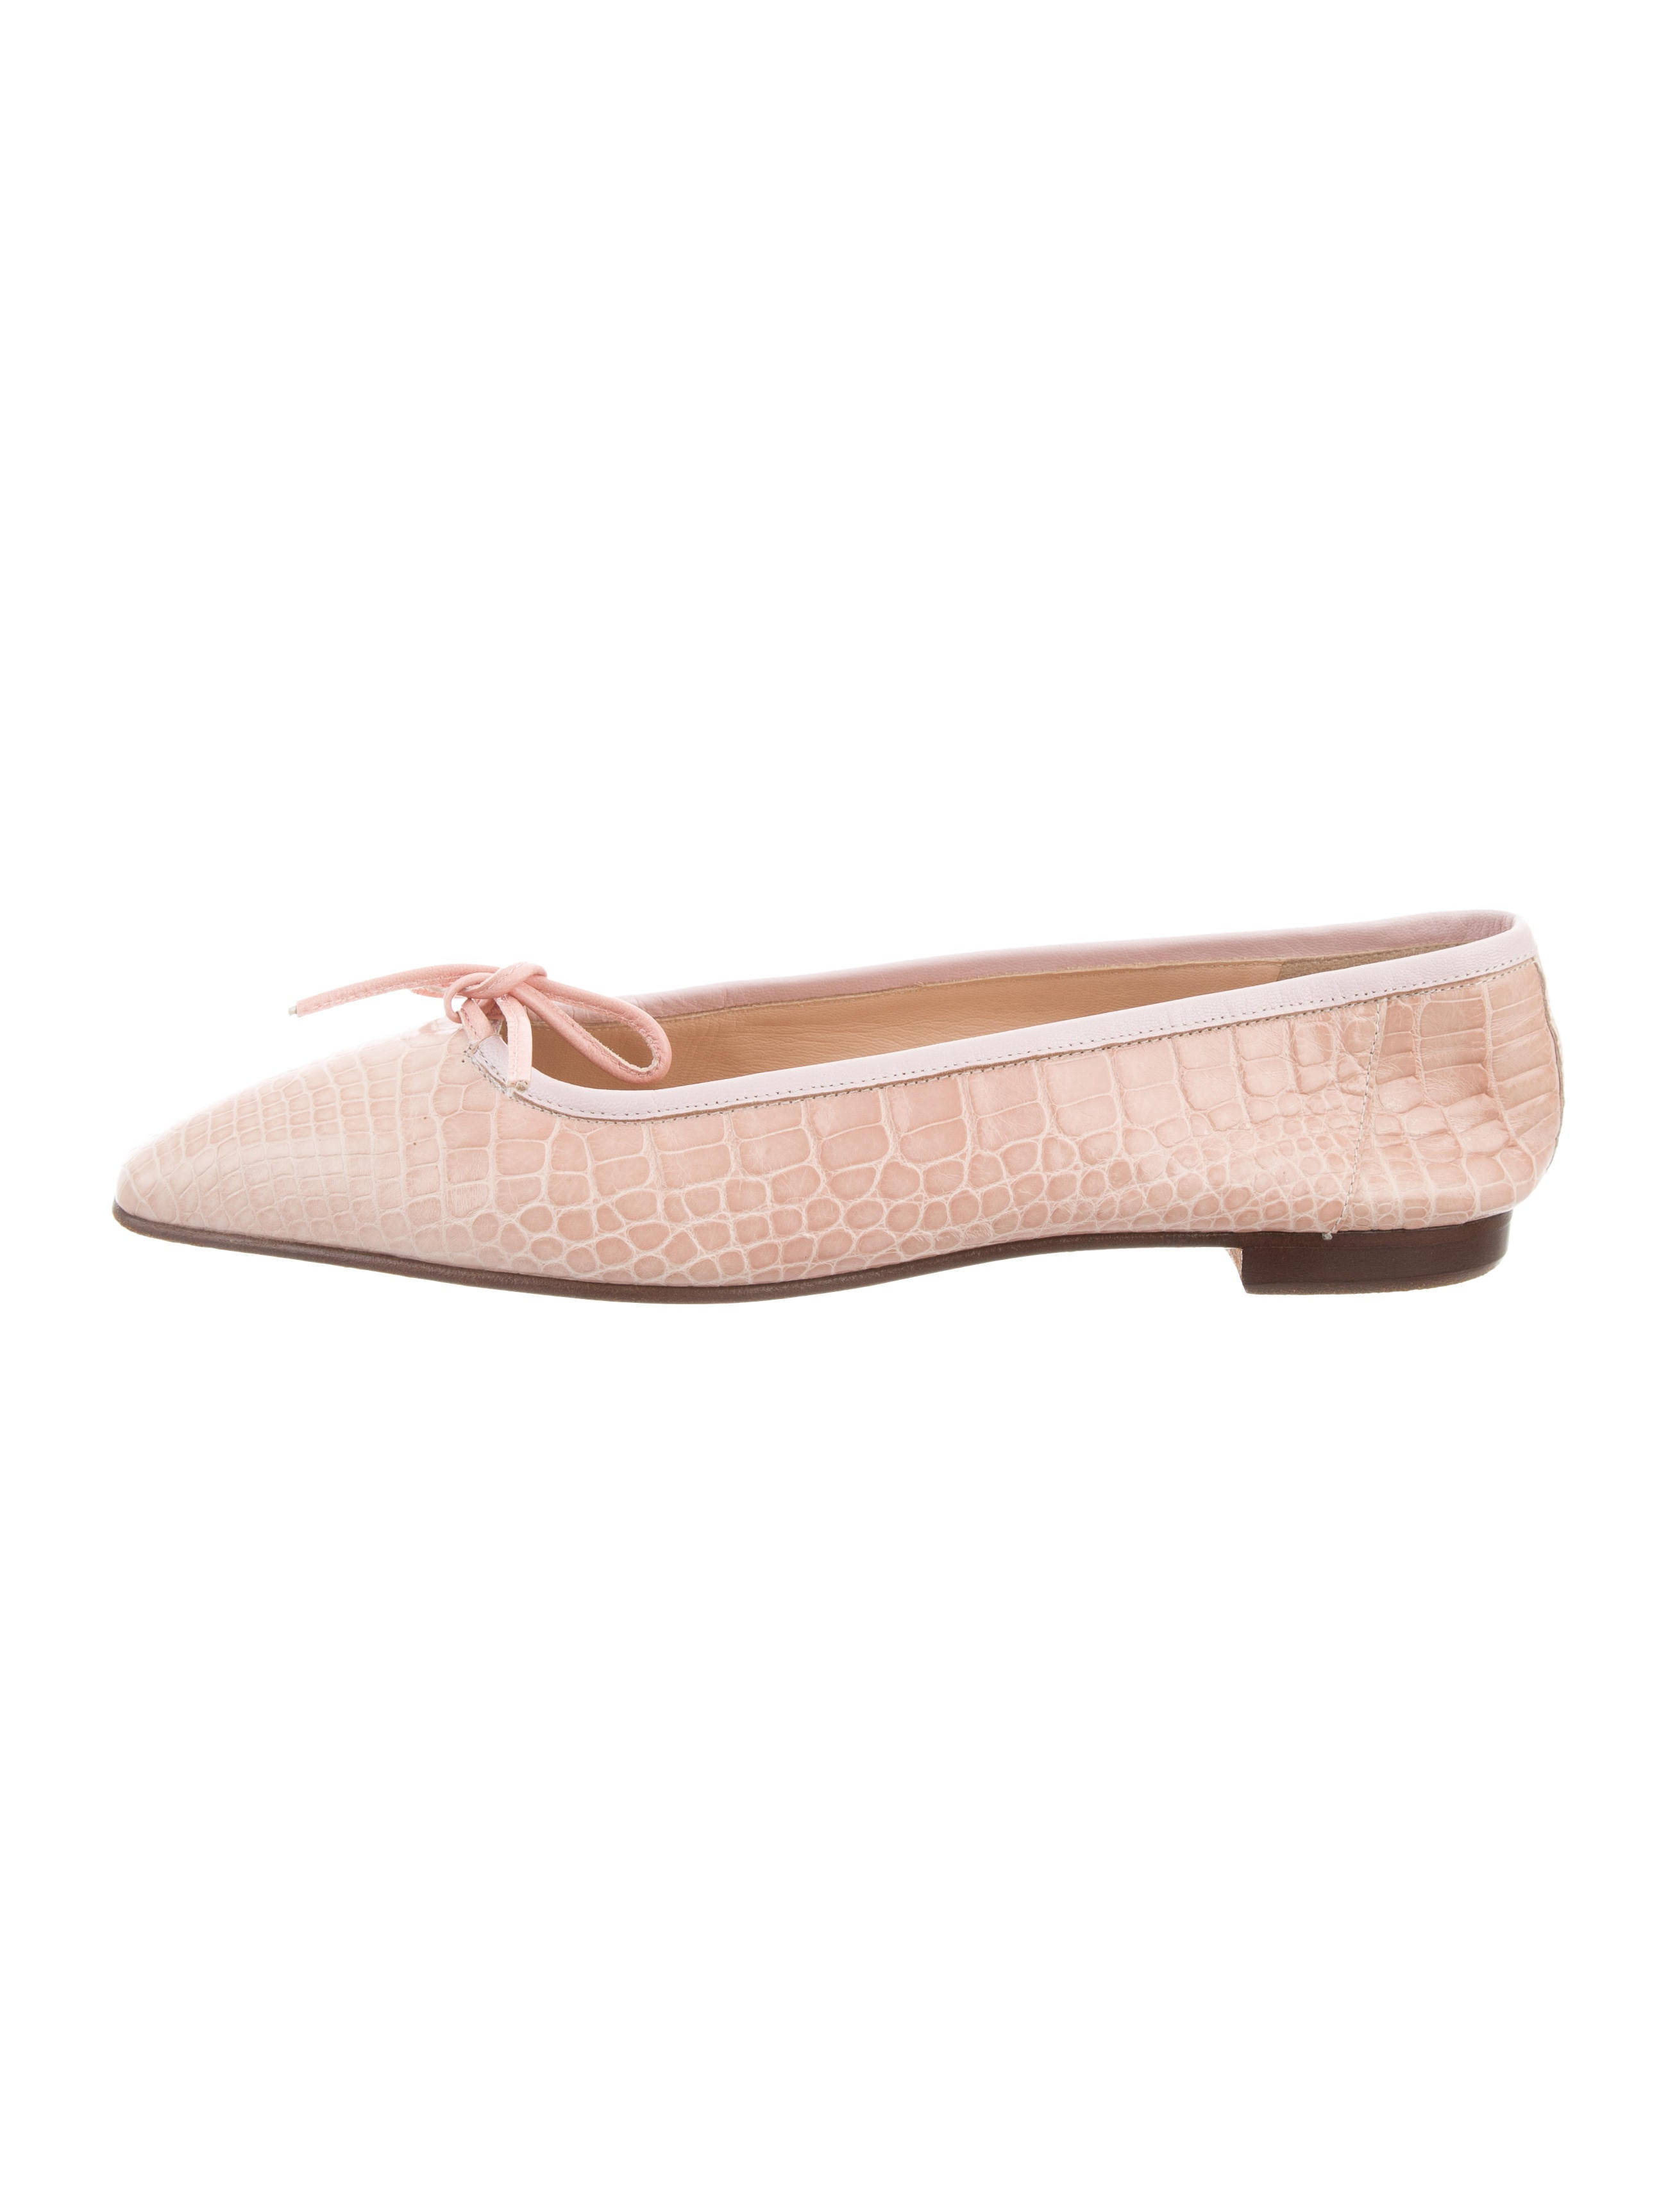 clearance largest supplier Manolo Blahnik Alligator Square-Toe Flats buy cheap discount with credit card online cheap sale perfect I7ncv